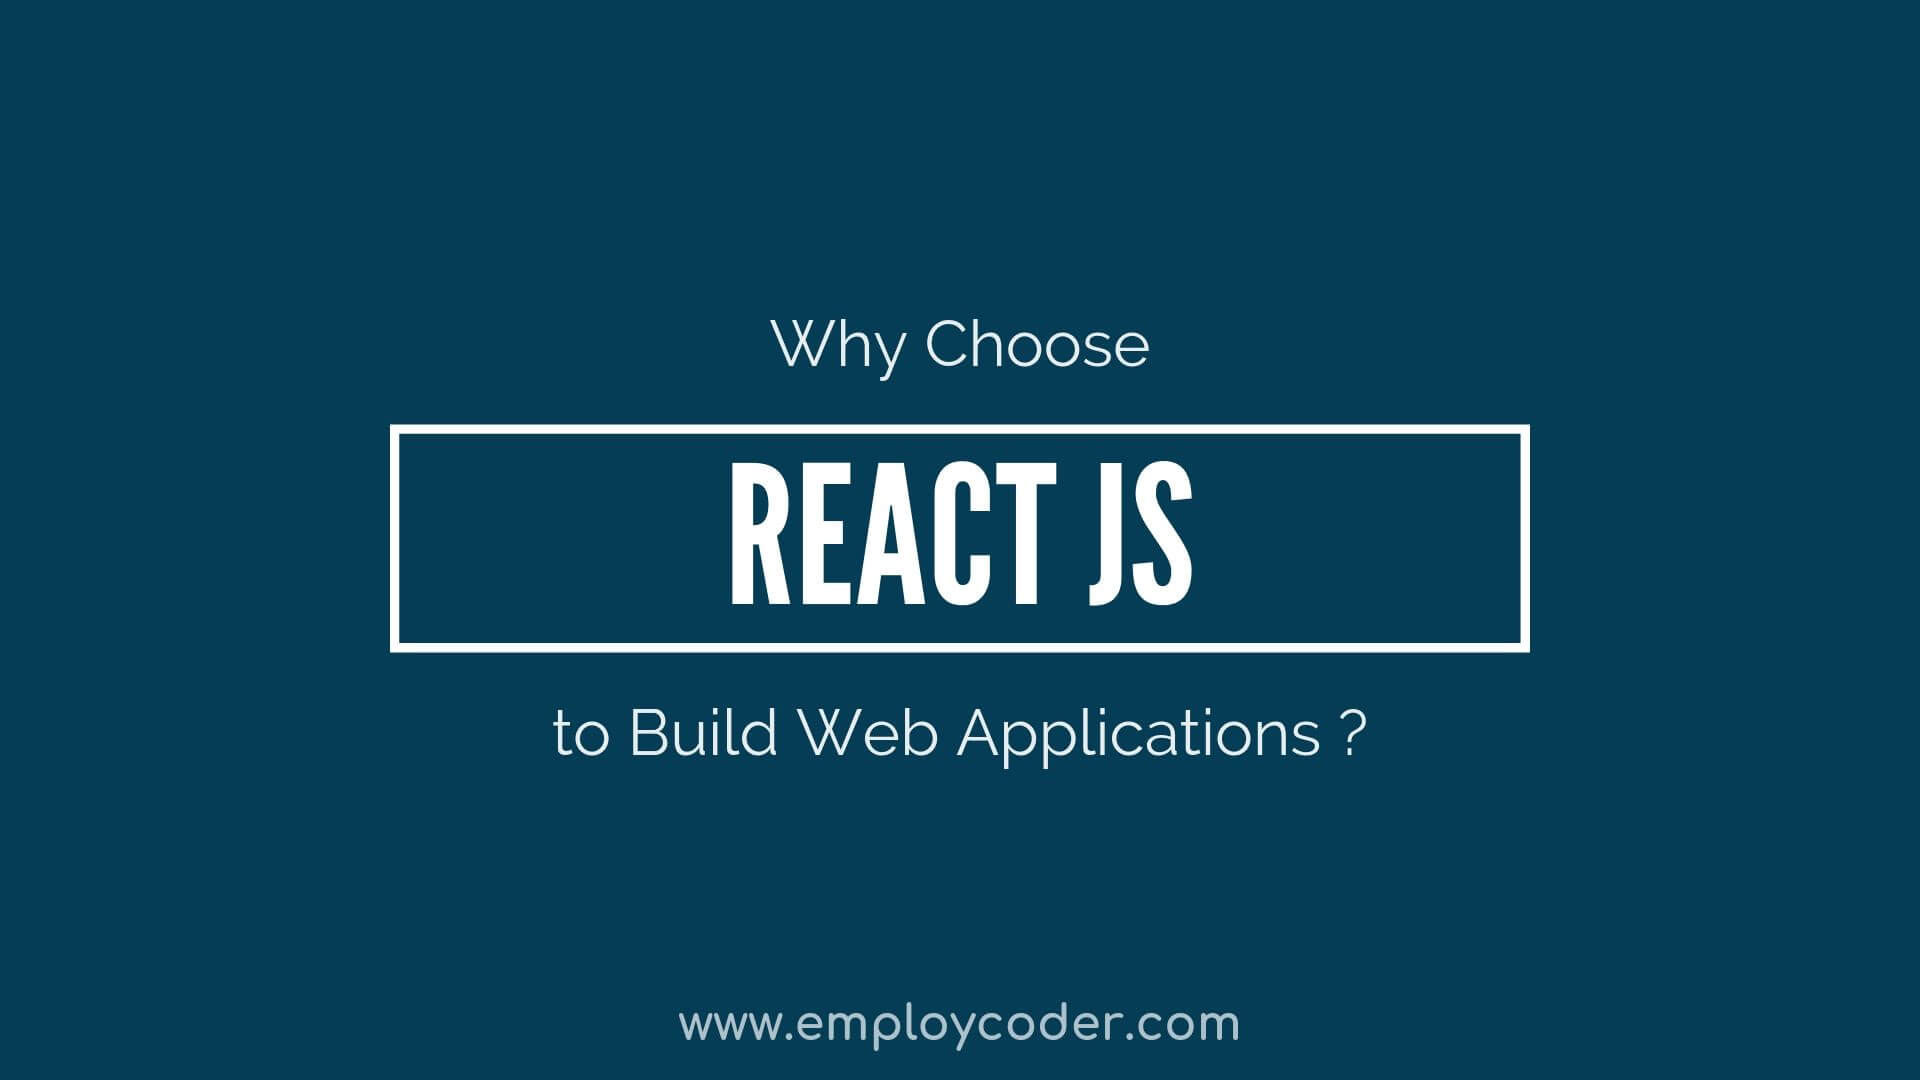 Why choose React Js to Build your Web Applications?